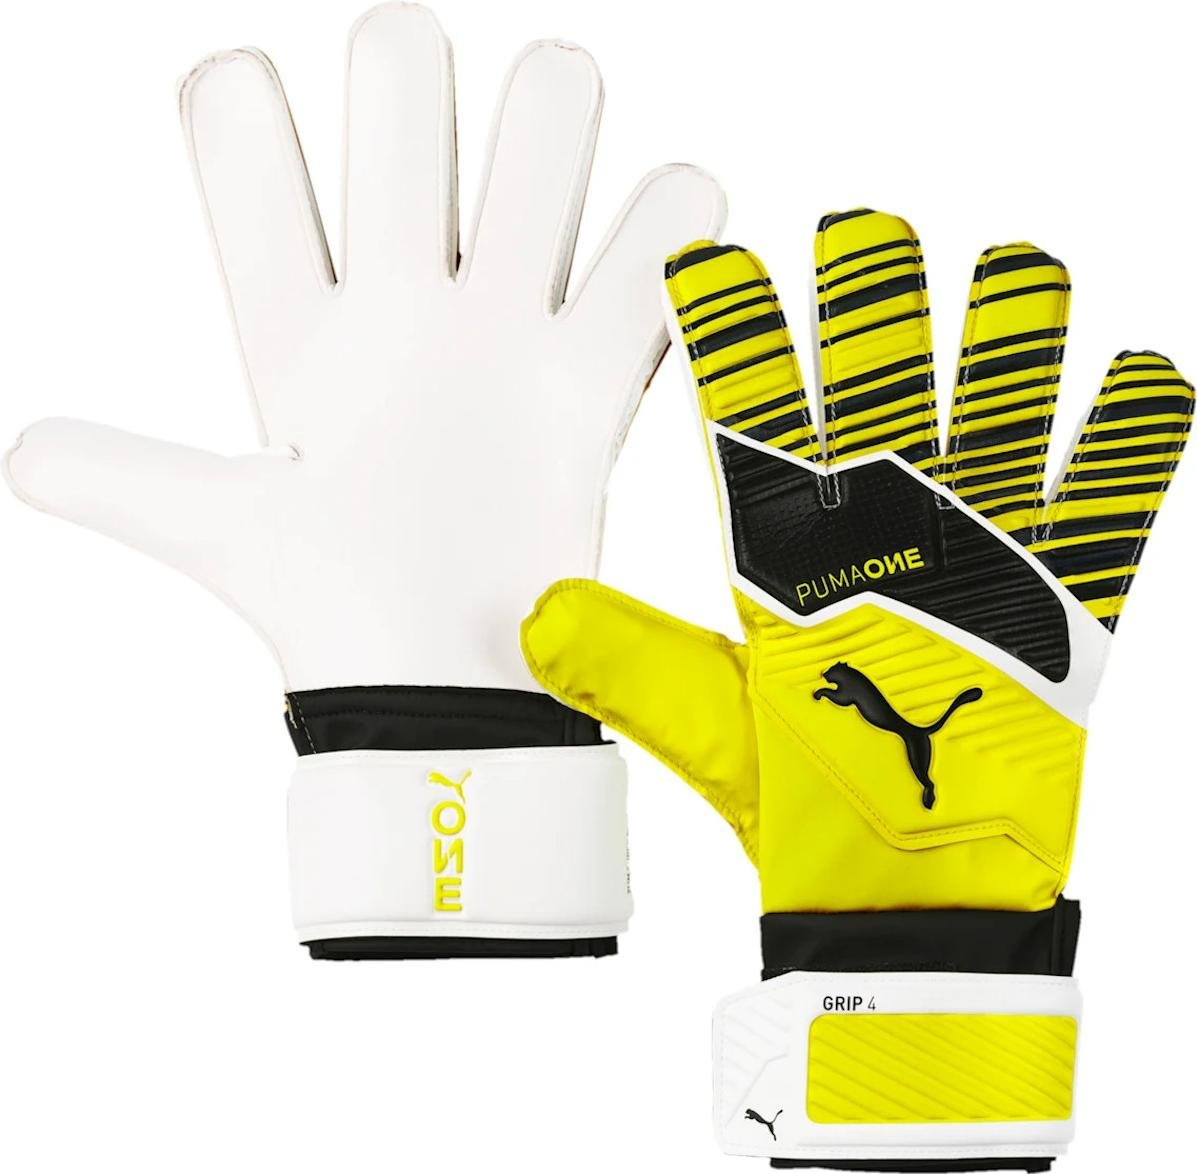 Goalkeeper's gloves Puma One Grip 4